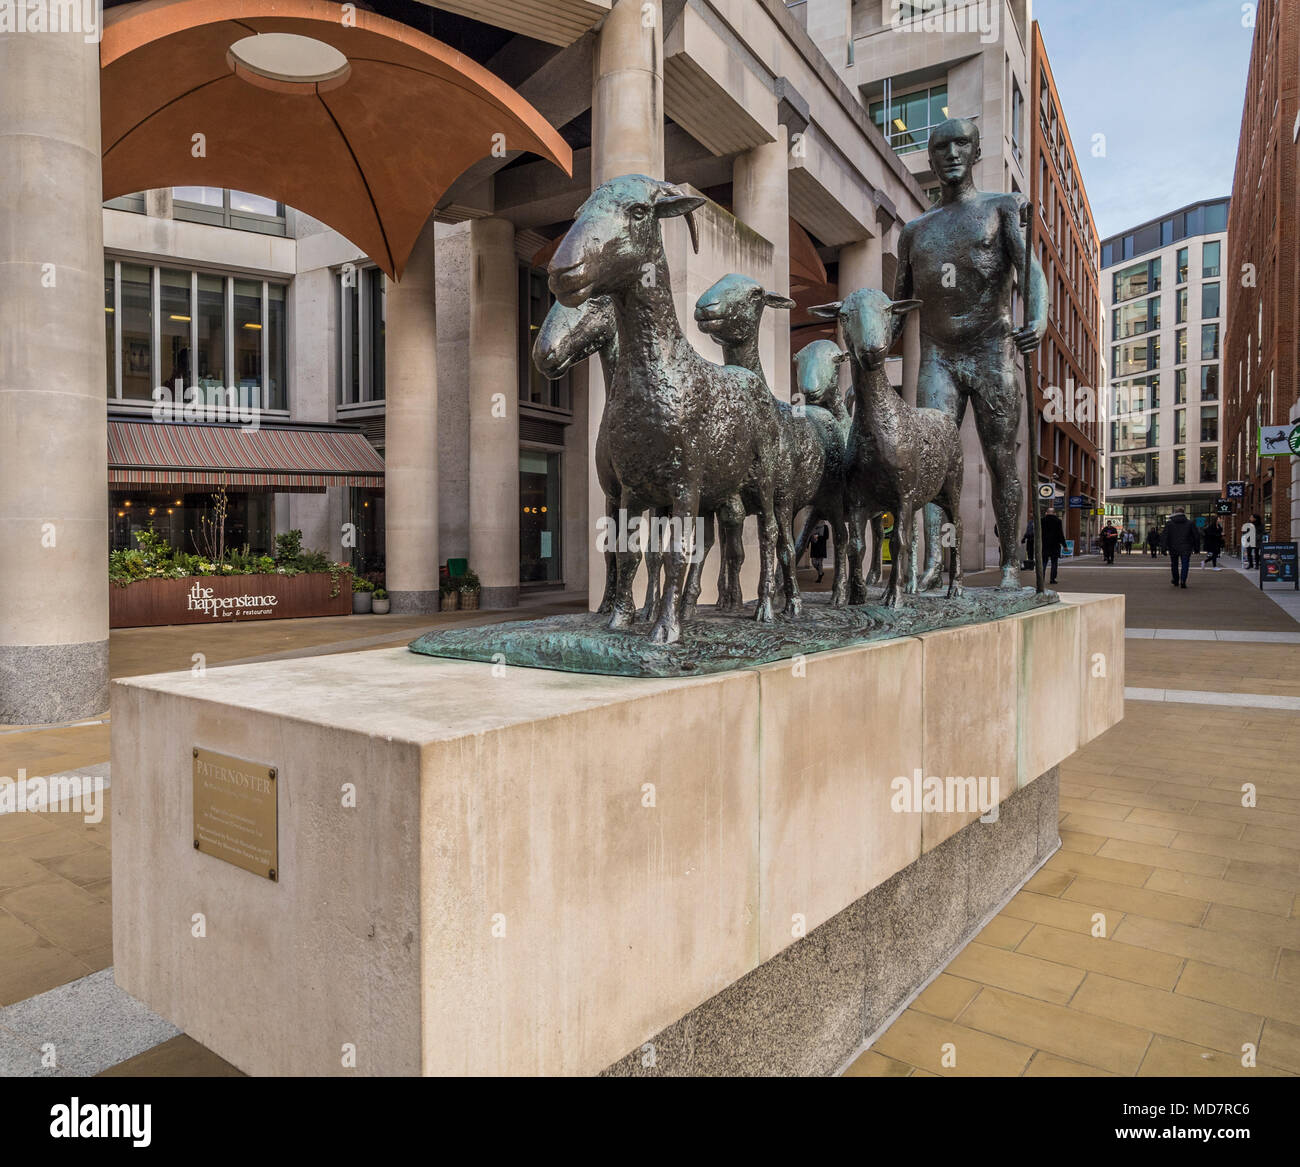 Paternoster (also known as Shepherd and Sheep or Shepherd with his Flock) outdoor 1975 bronze sculpture by Elisabeth Frink, Paternoster Square, London - Stock Image